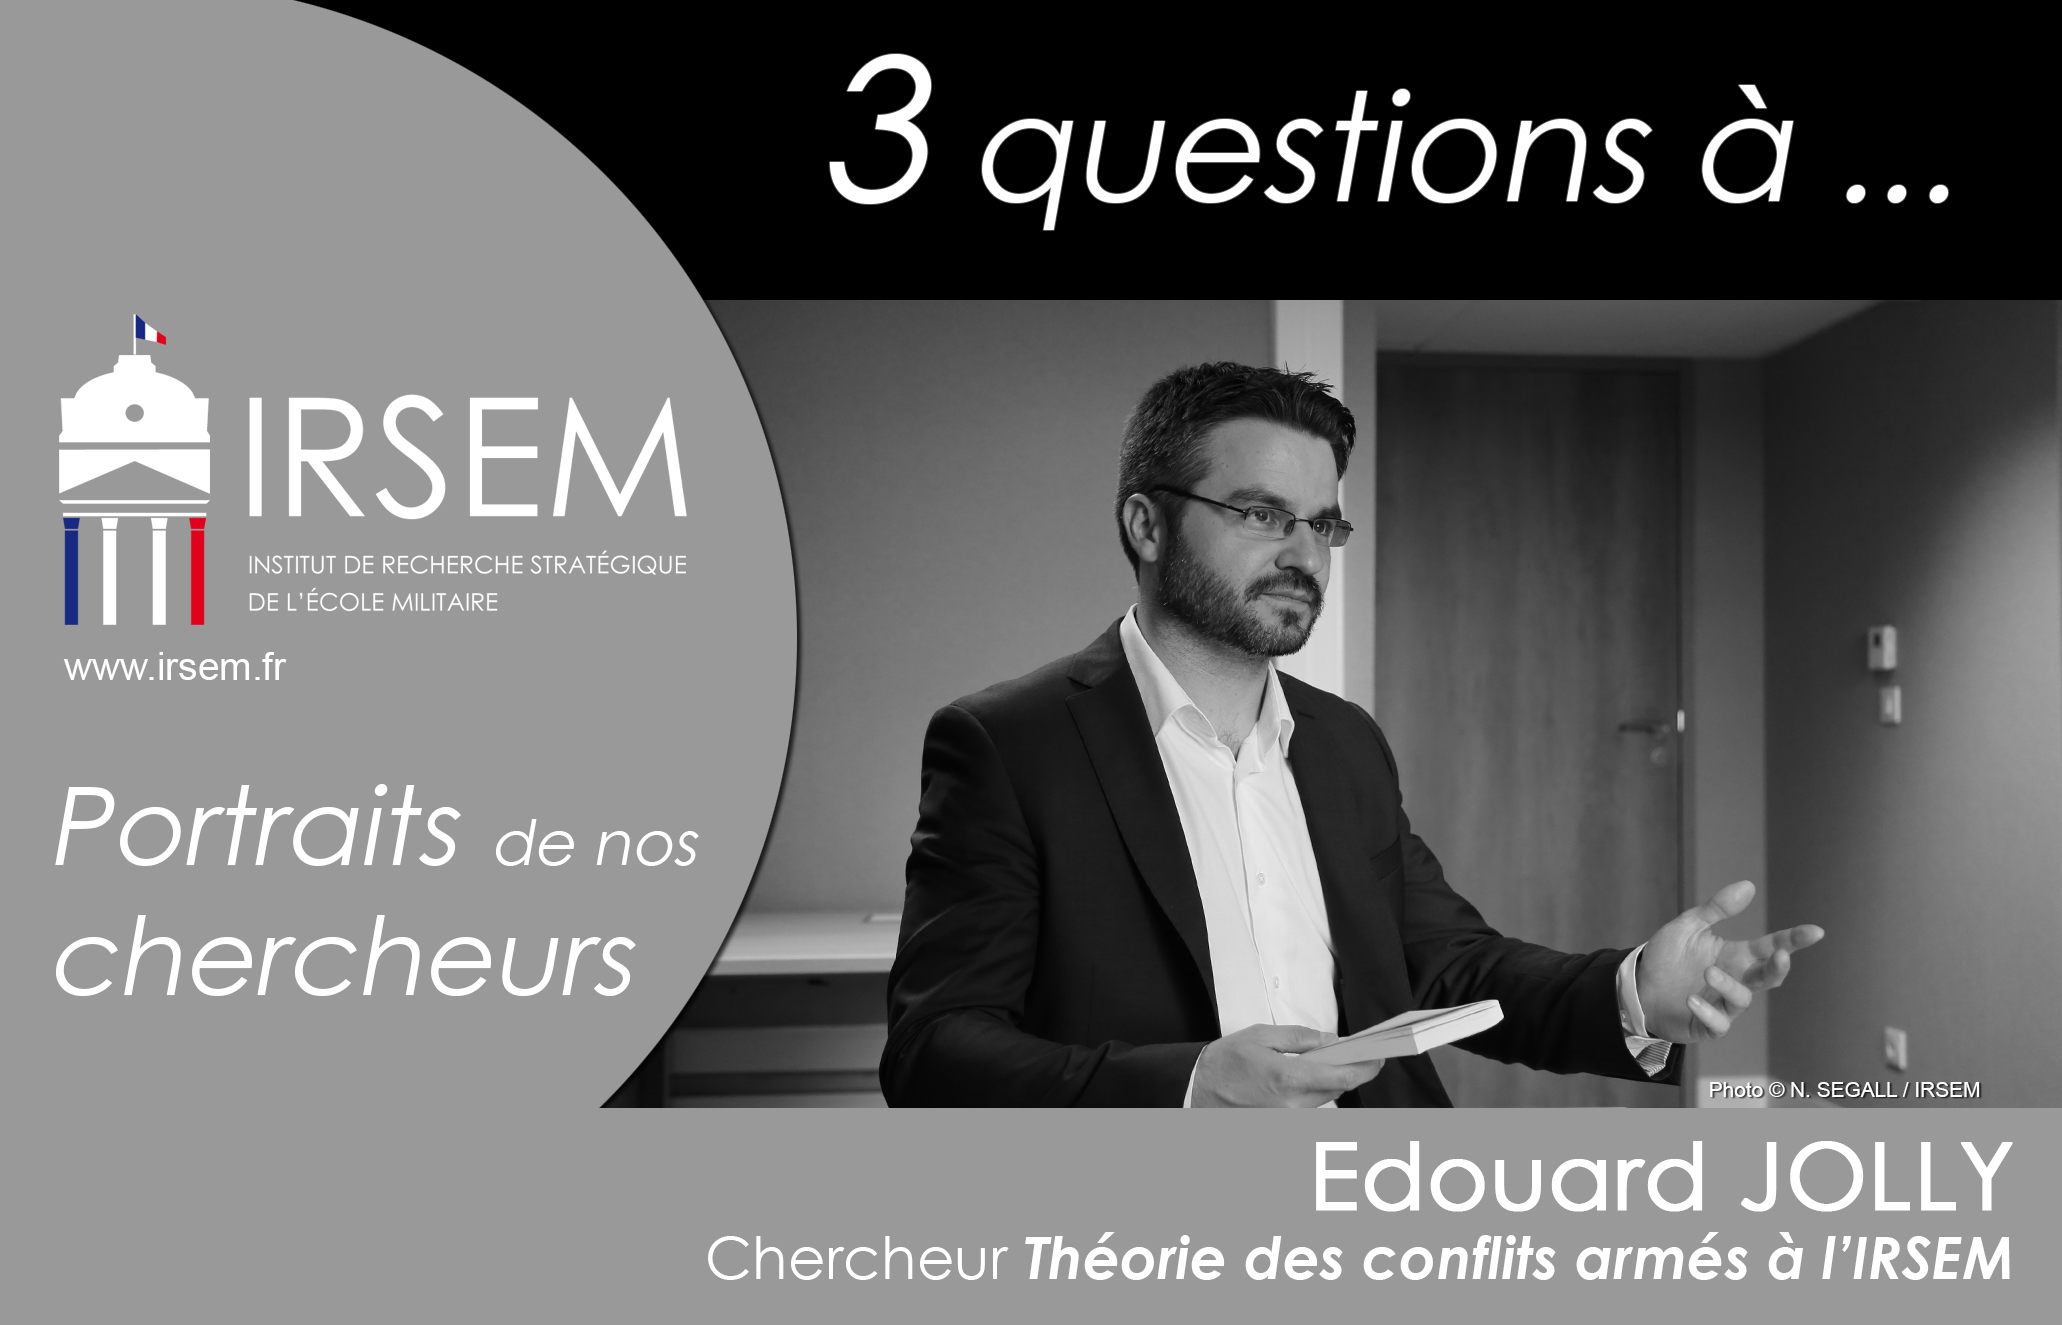 3 questions à ... Edouard JOLLY